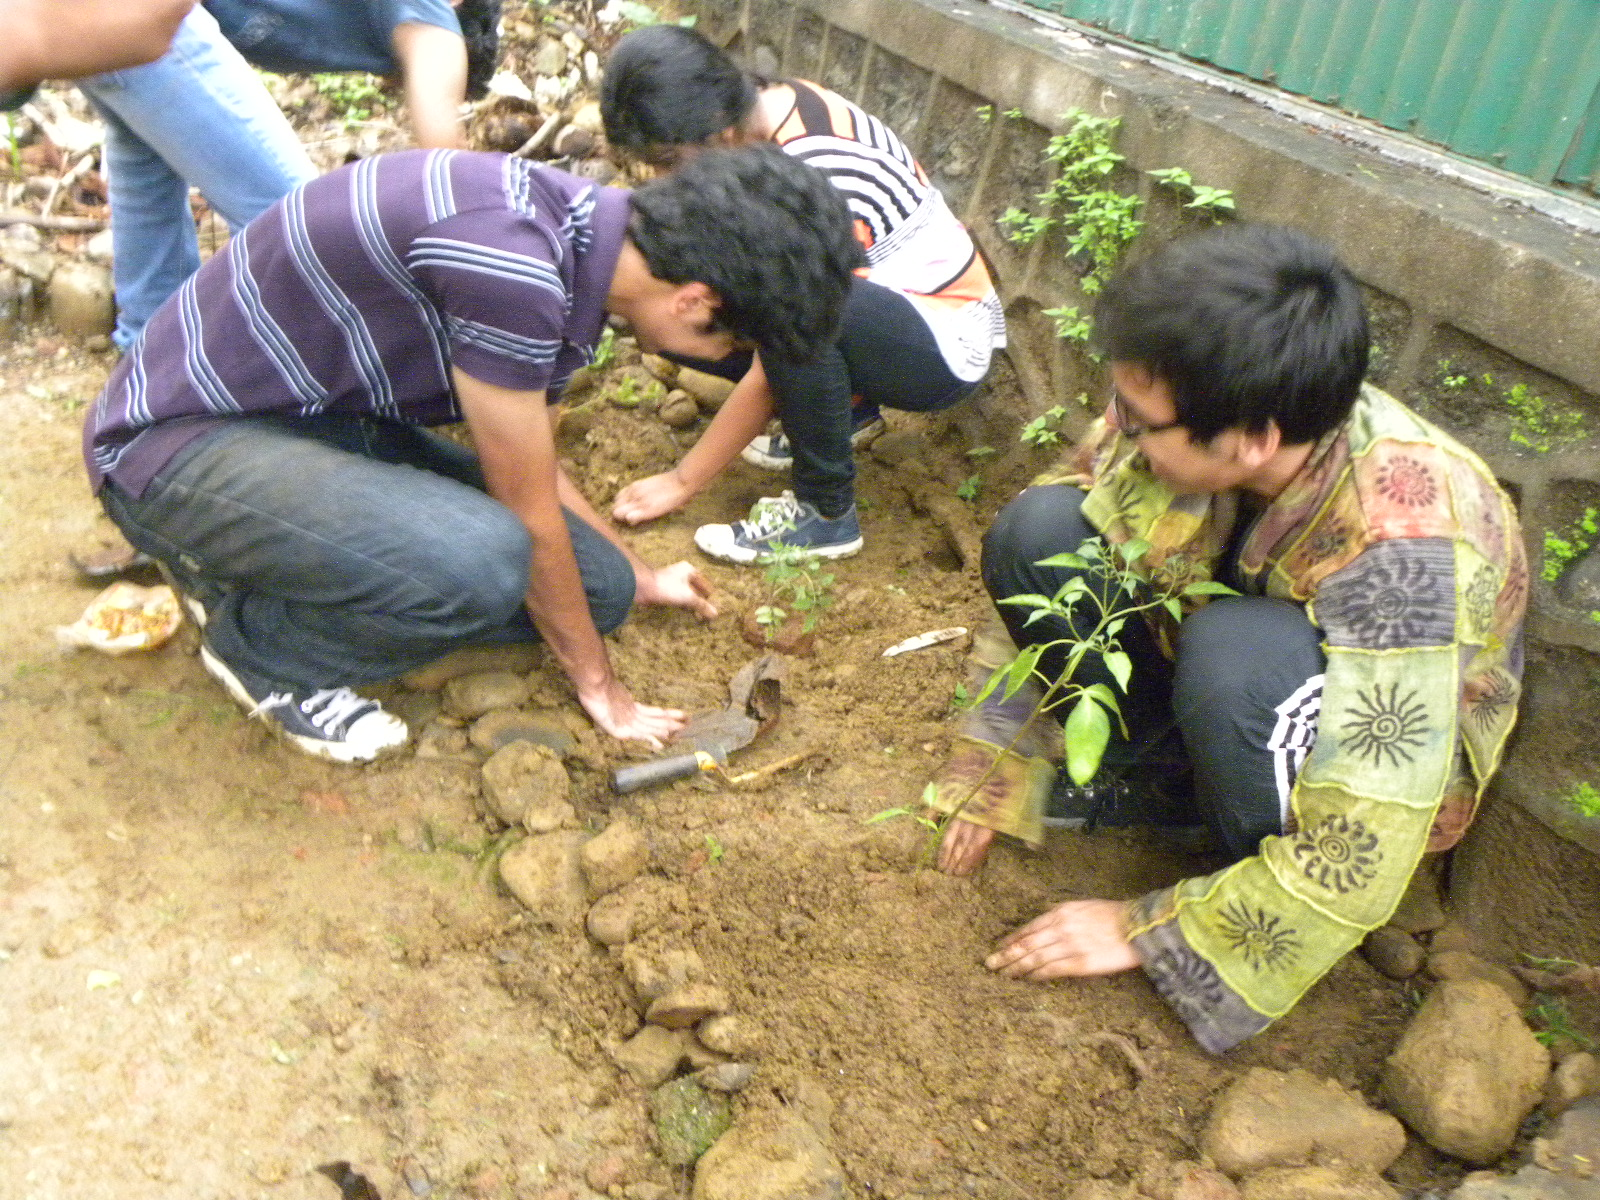 n development foundation idf cas activity podar the tree plantation activity was conducted as a part cas creativity action service prog of the school idf appreciates the efforts of the school in